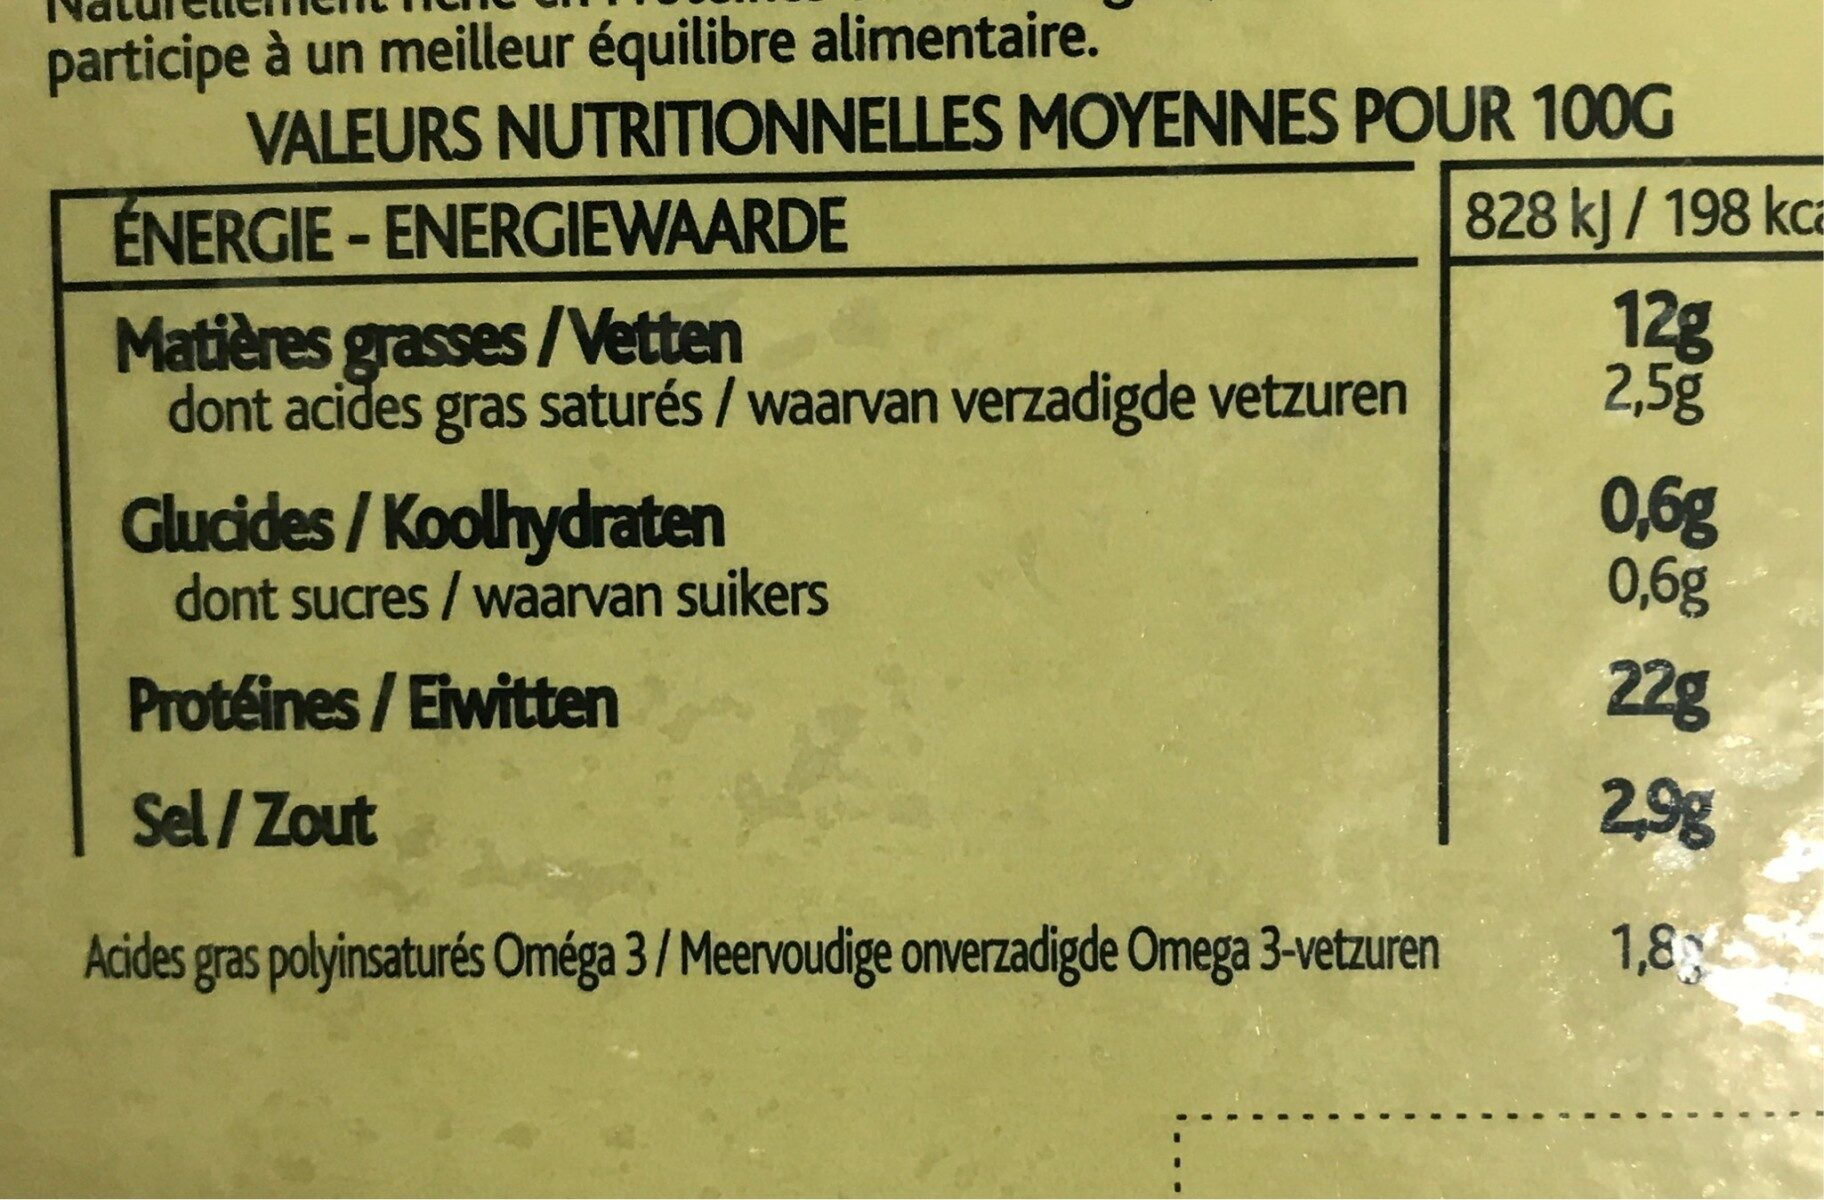 Saumon fume d'ecosse 4 tranches 140g labeyrie - Nutrition facts - fr